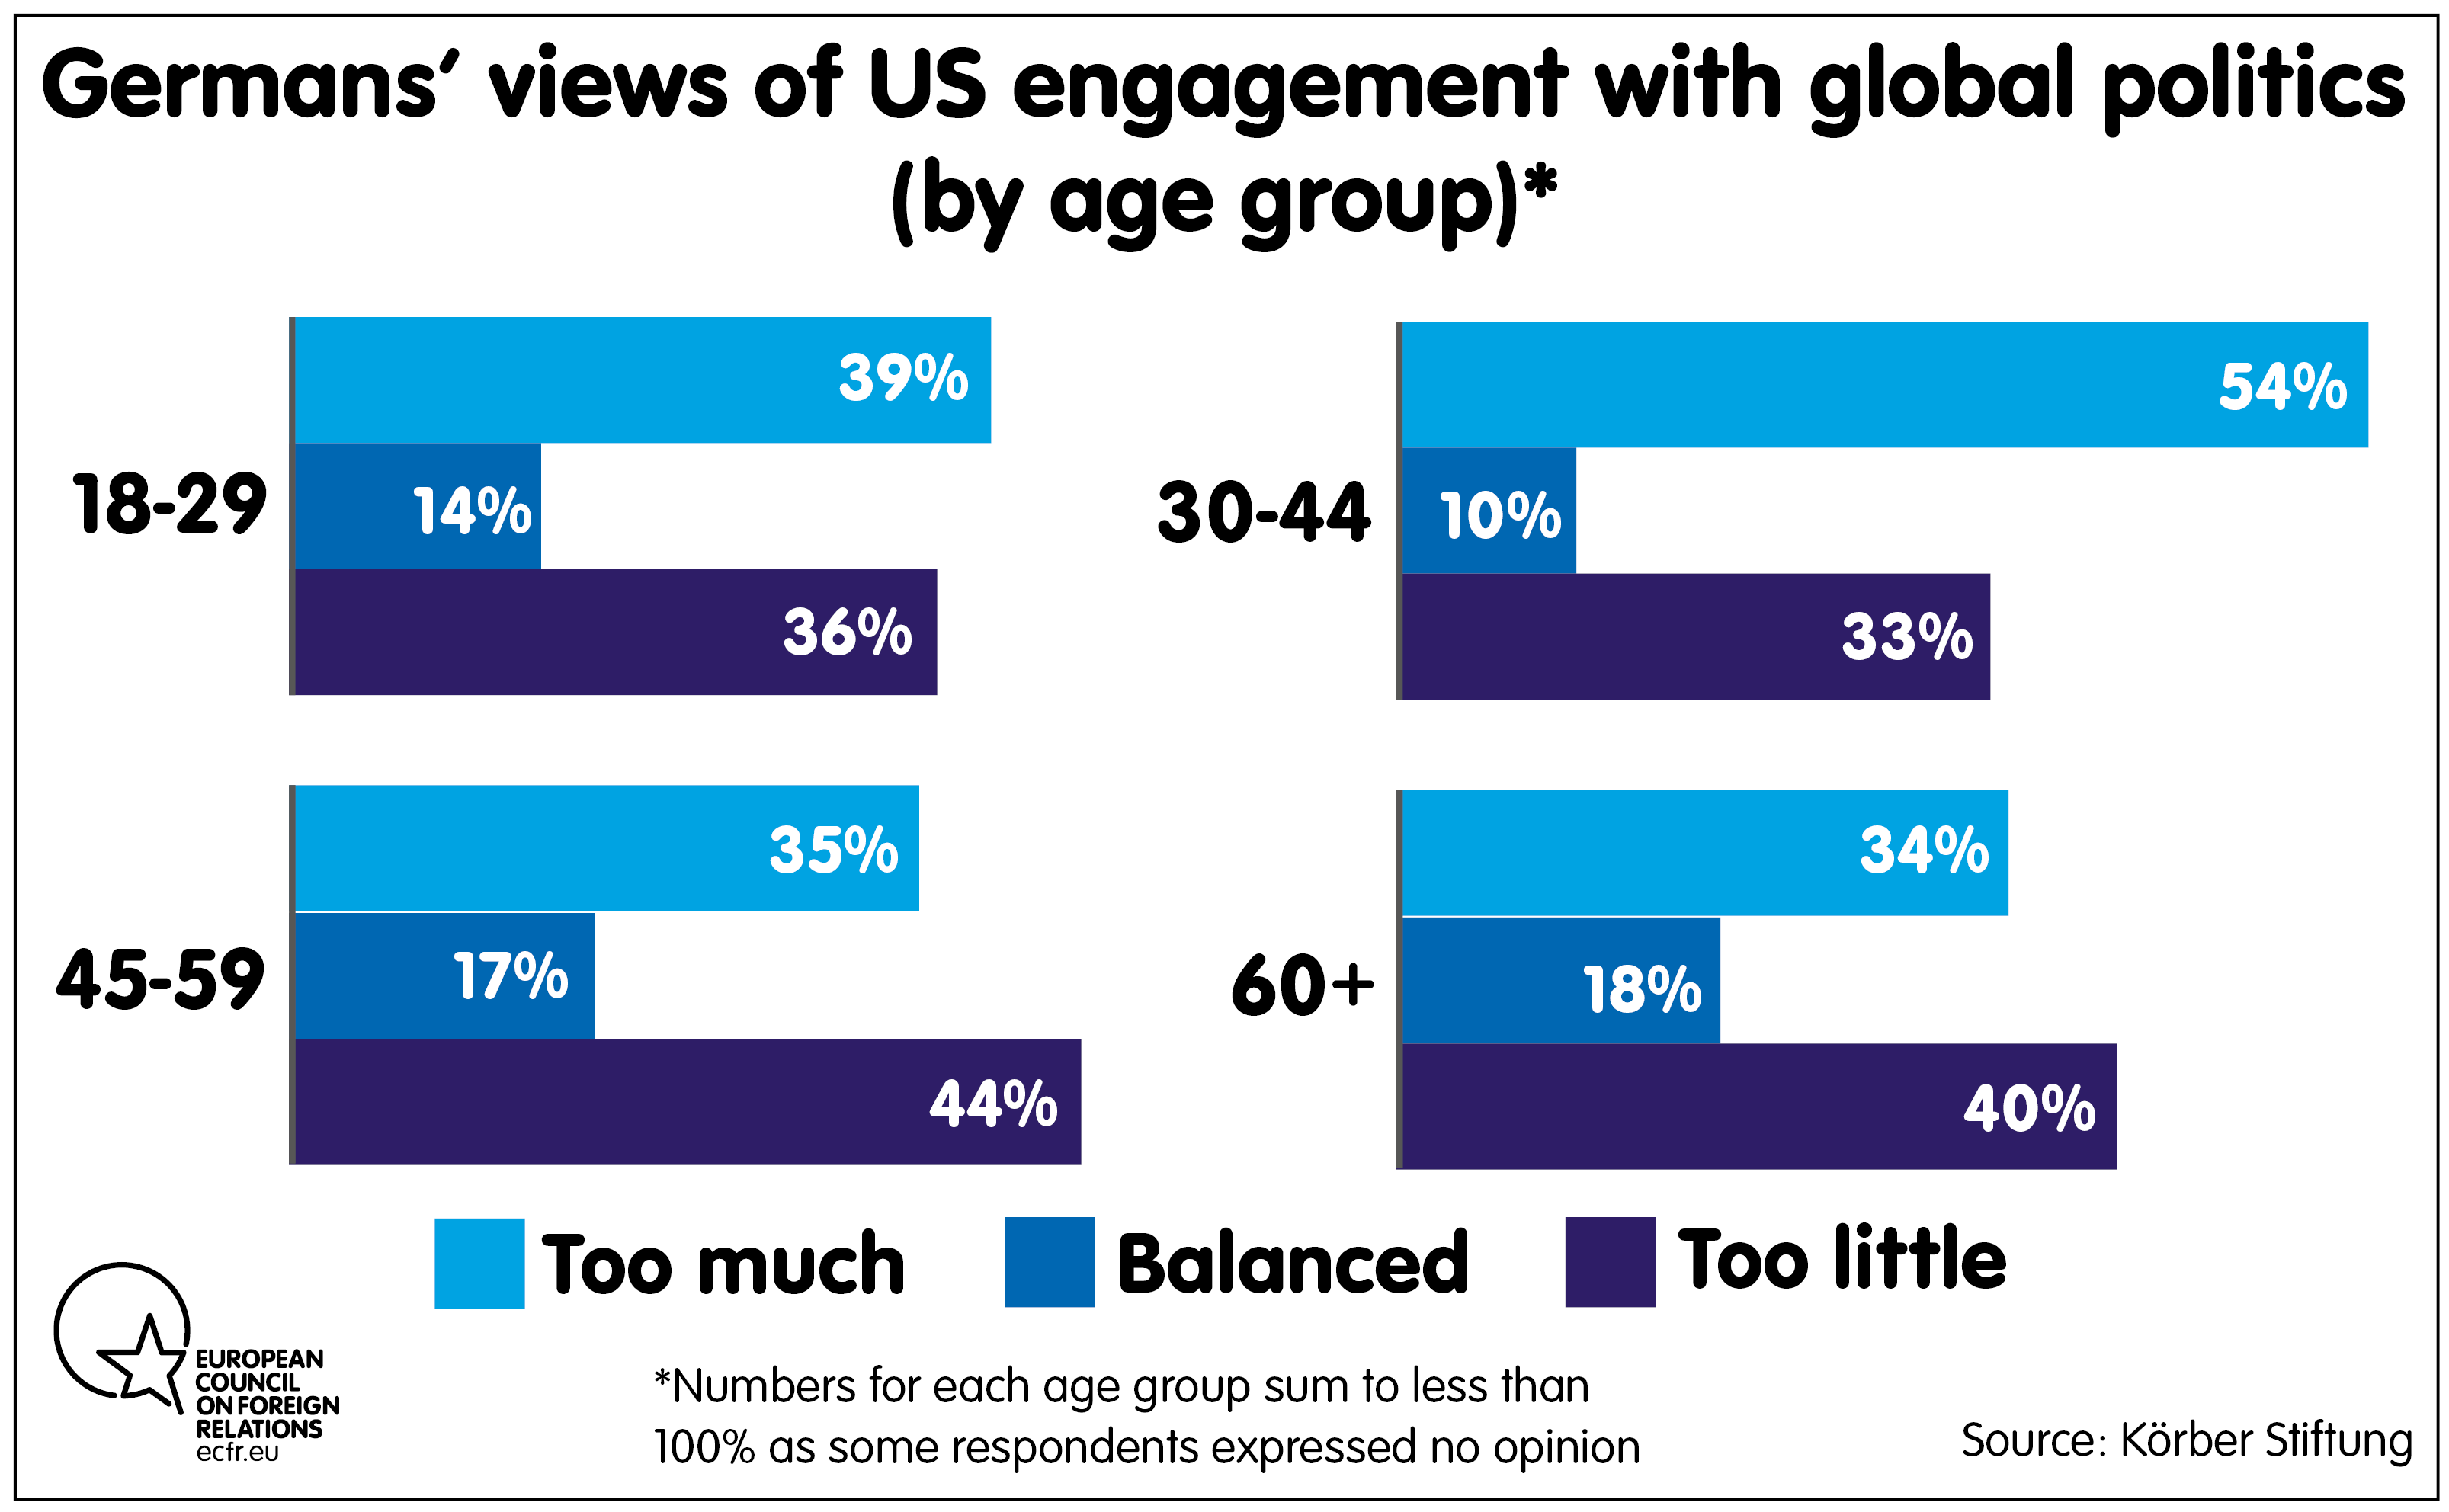 Germans views of US engagmement with global politics